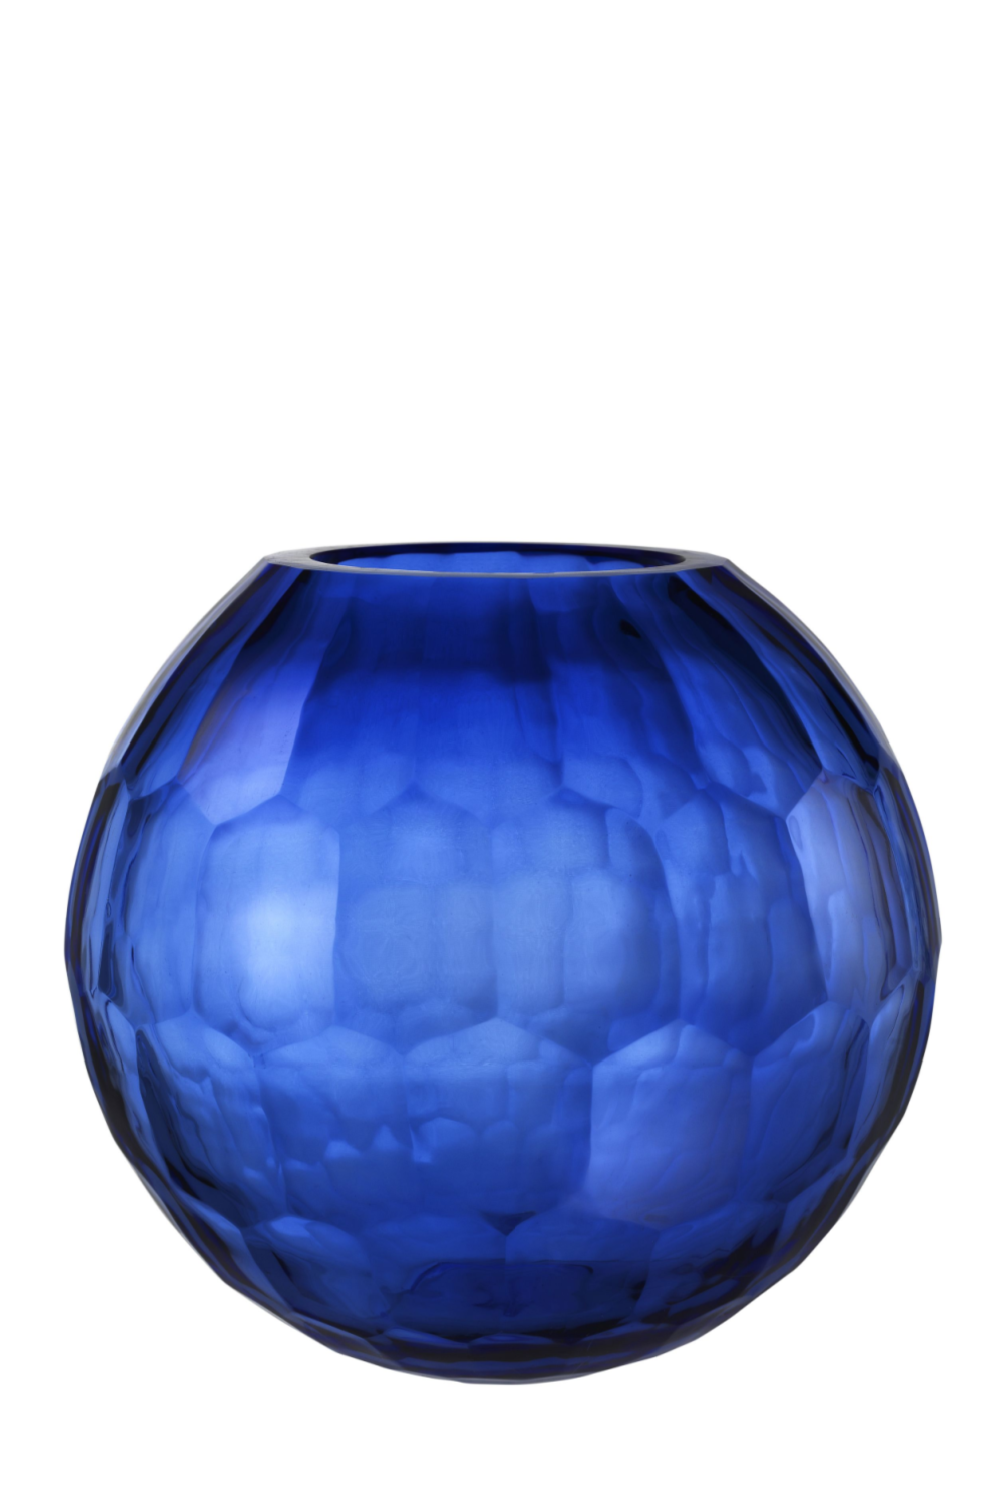 Blue Glass Vase - L | Eichholtz Feeza